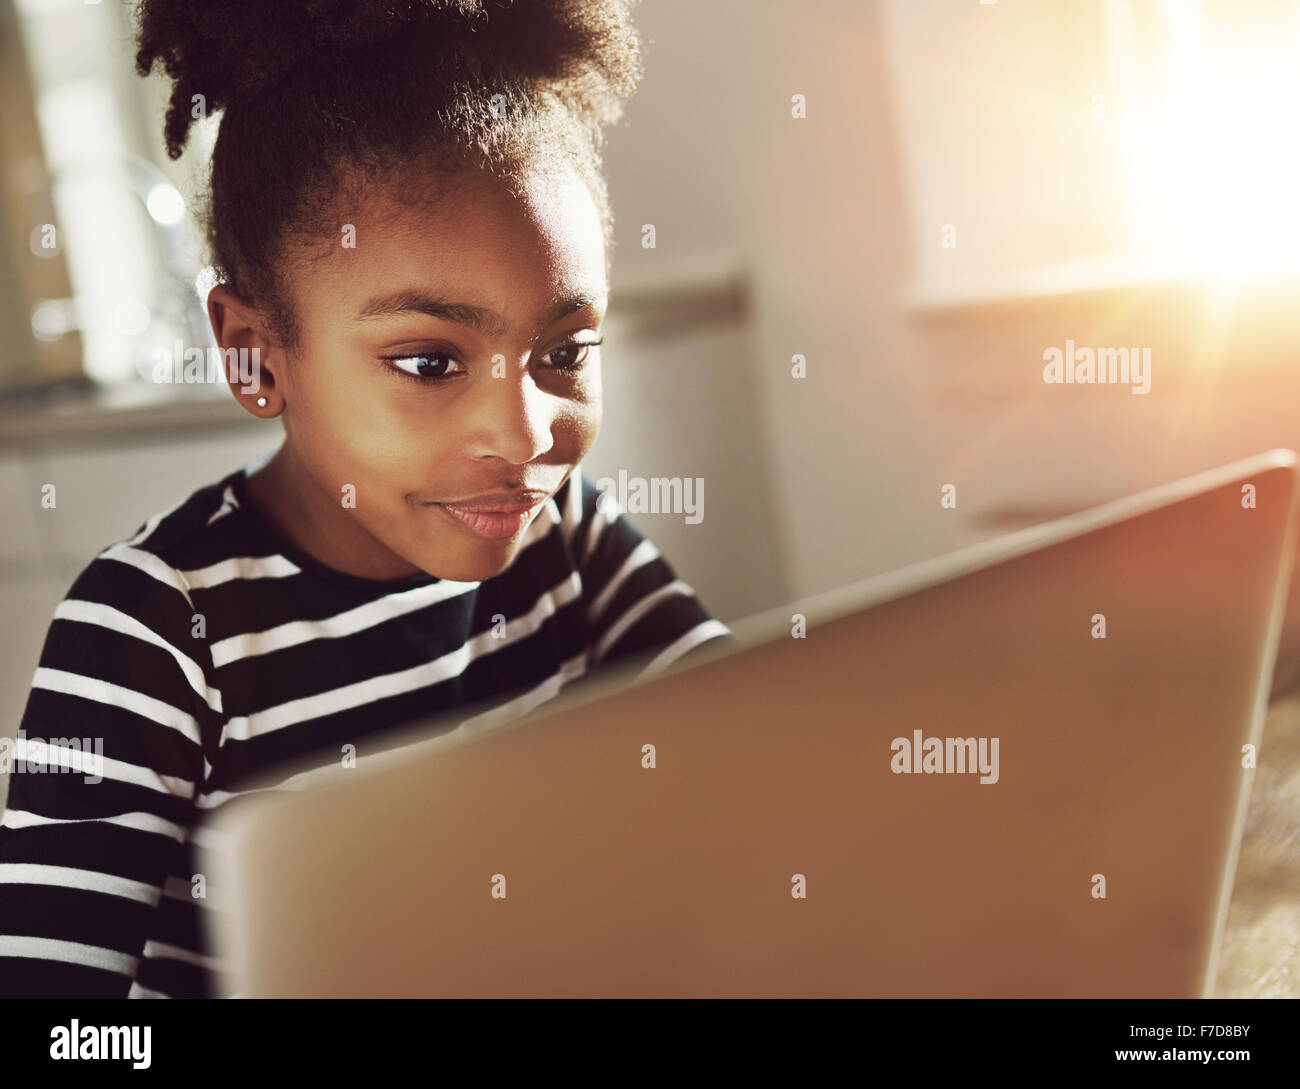 Smiling black girl using a laptop at home sitting reading information on the screen with an absorbed expression - Stock Image